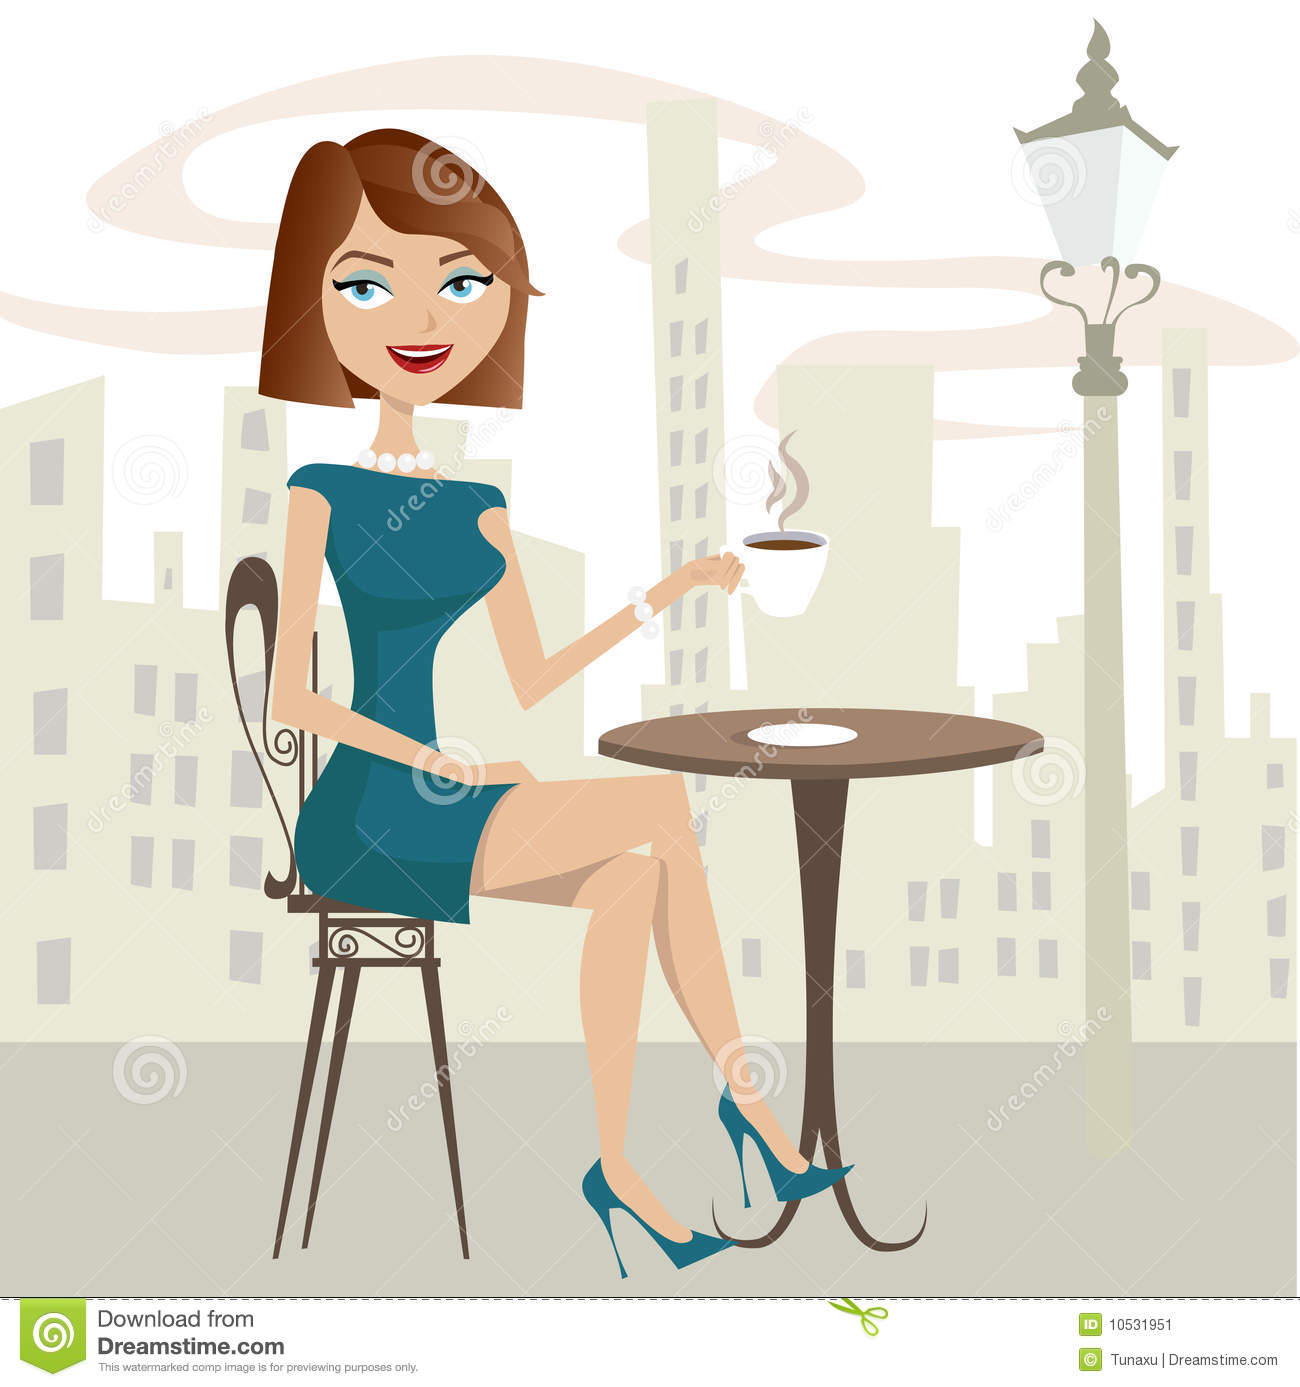 Girl Drinking Coffee Stock Image - Image: 10531951